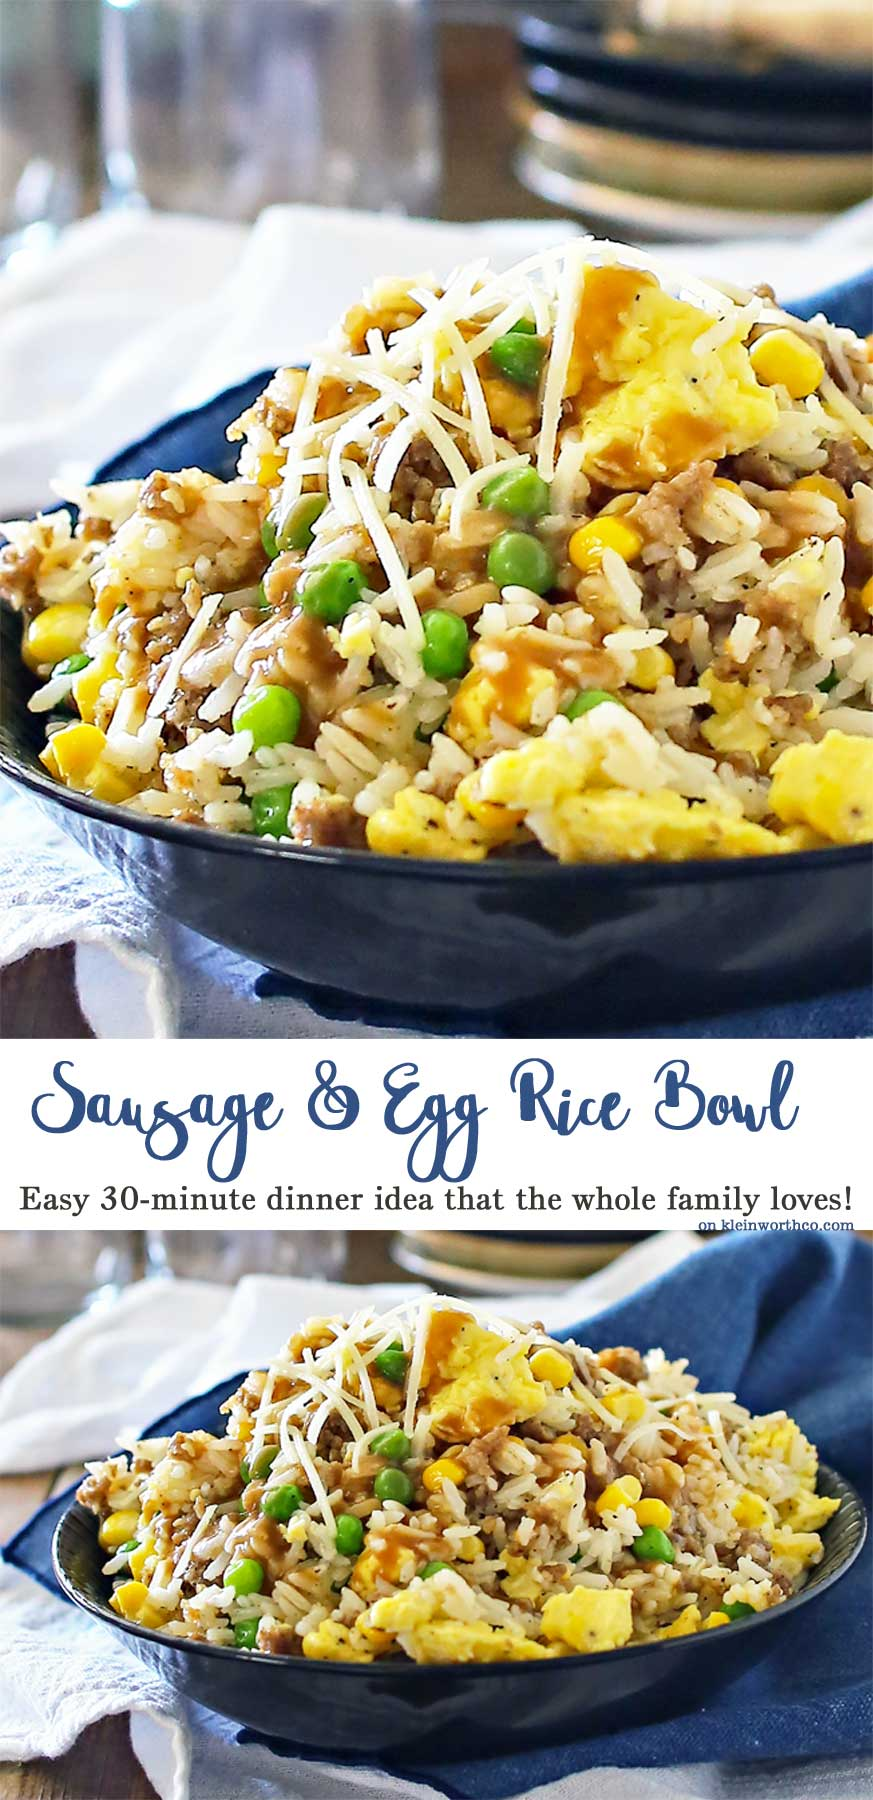 Sausage Egg Rice Bowl